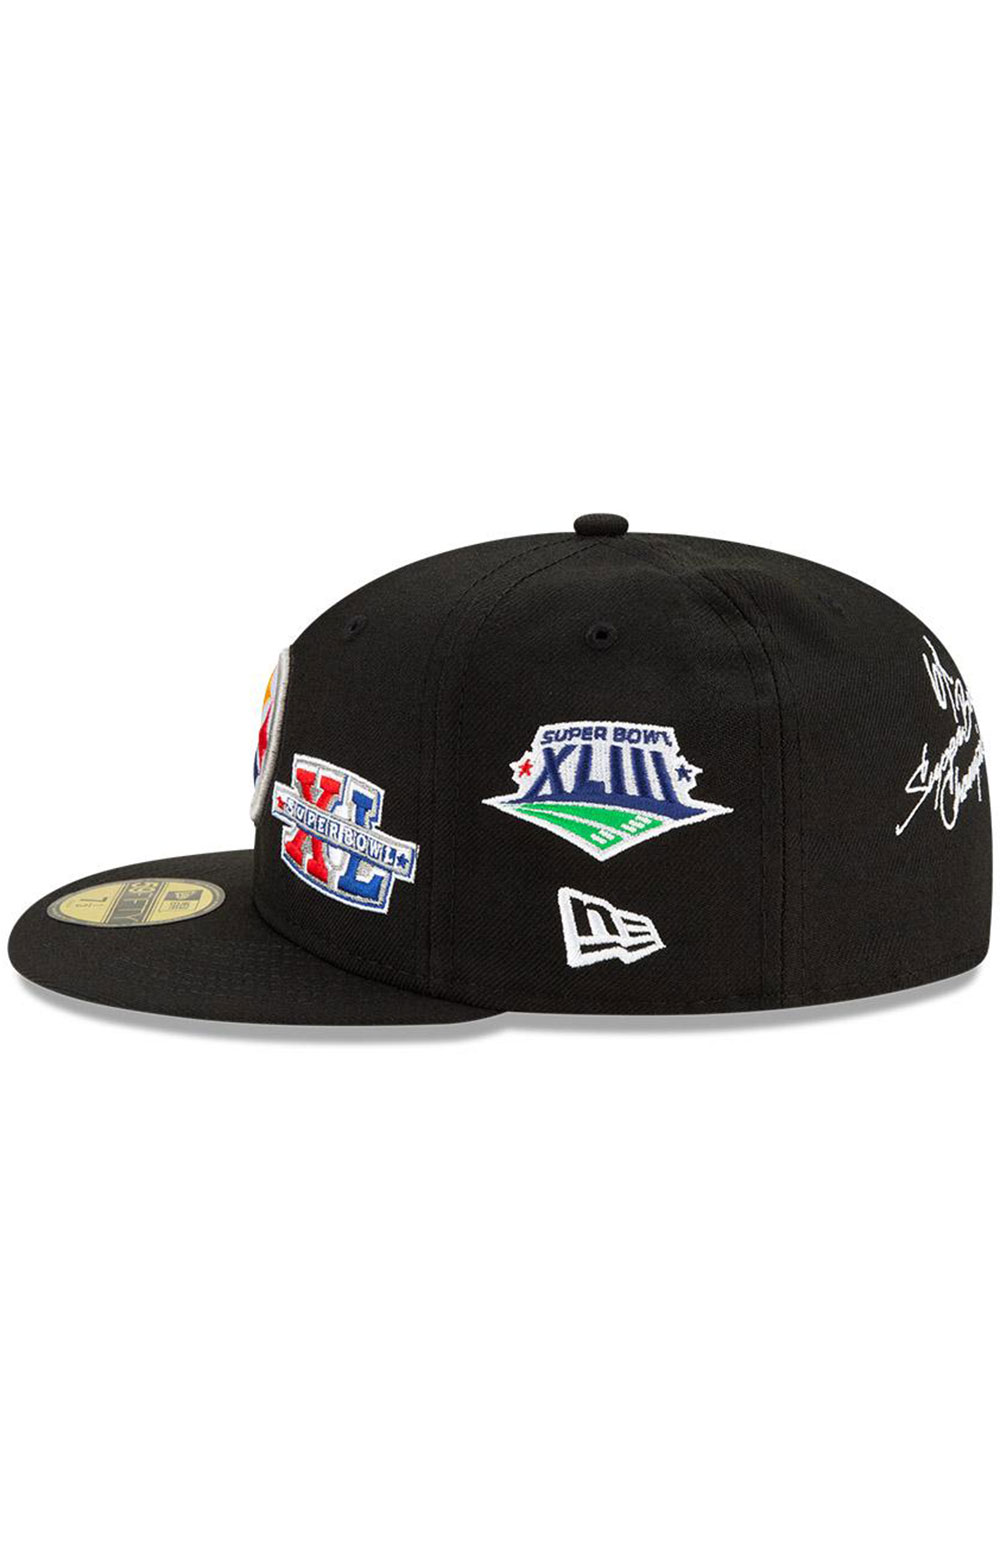 Pittsburgh Steelers Super Bowl Patch 59Fifty Fitted Hat - Black  4